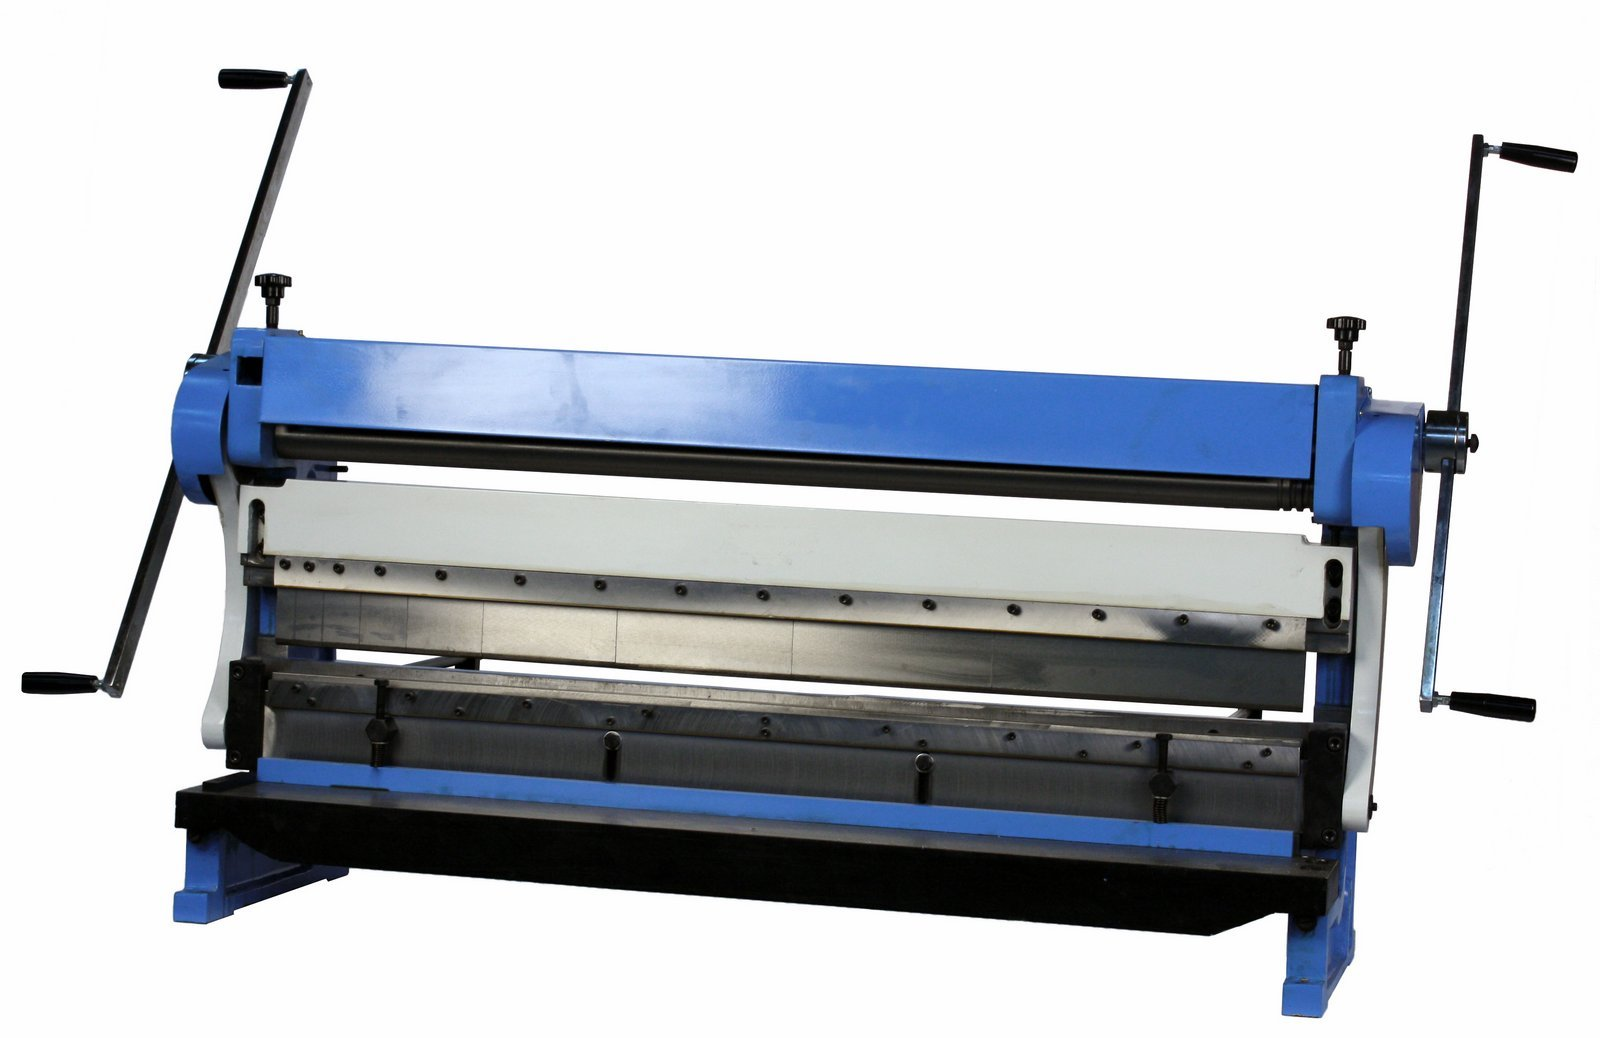 Erie Tools 52'' 3 in 1 Sheet Metal Machine Shear, Brake, and Roll Combination Machine with 16 Gauge Capacity